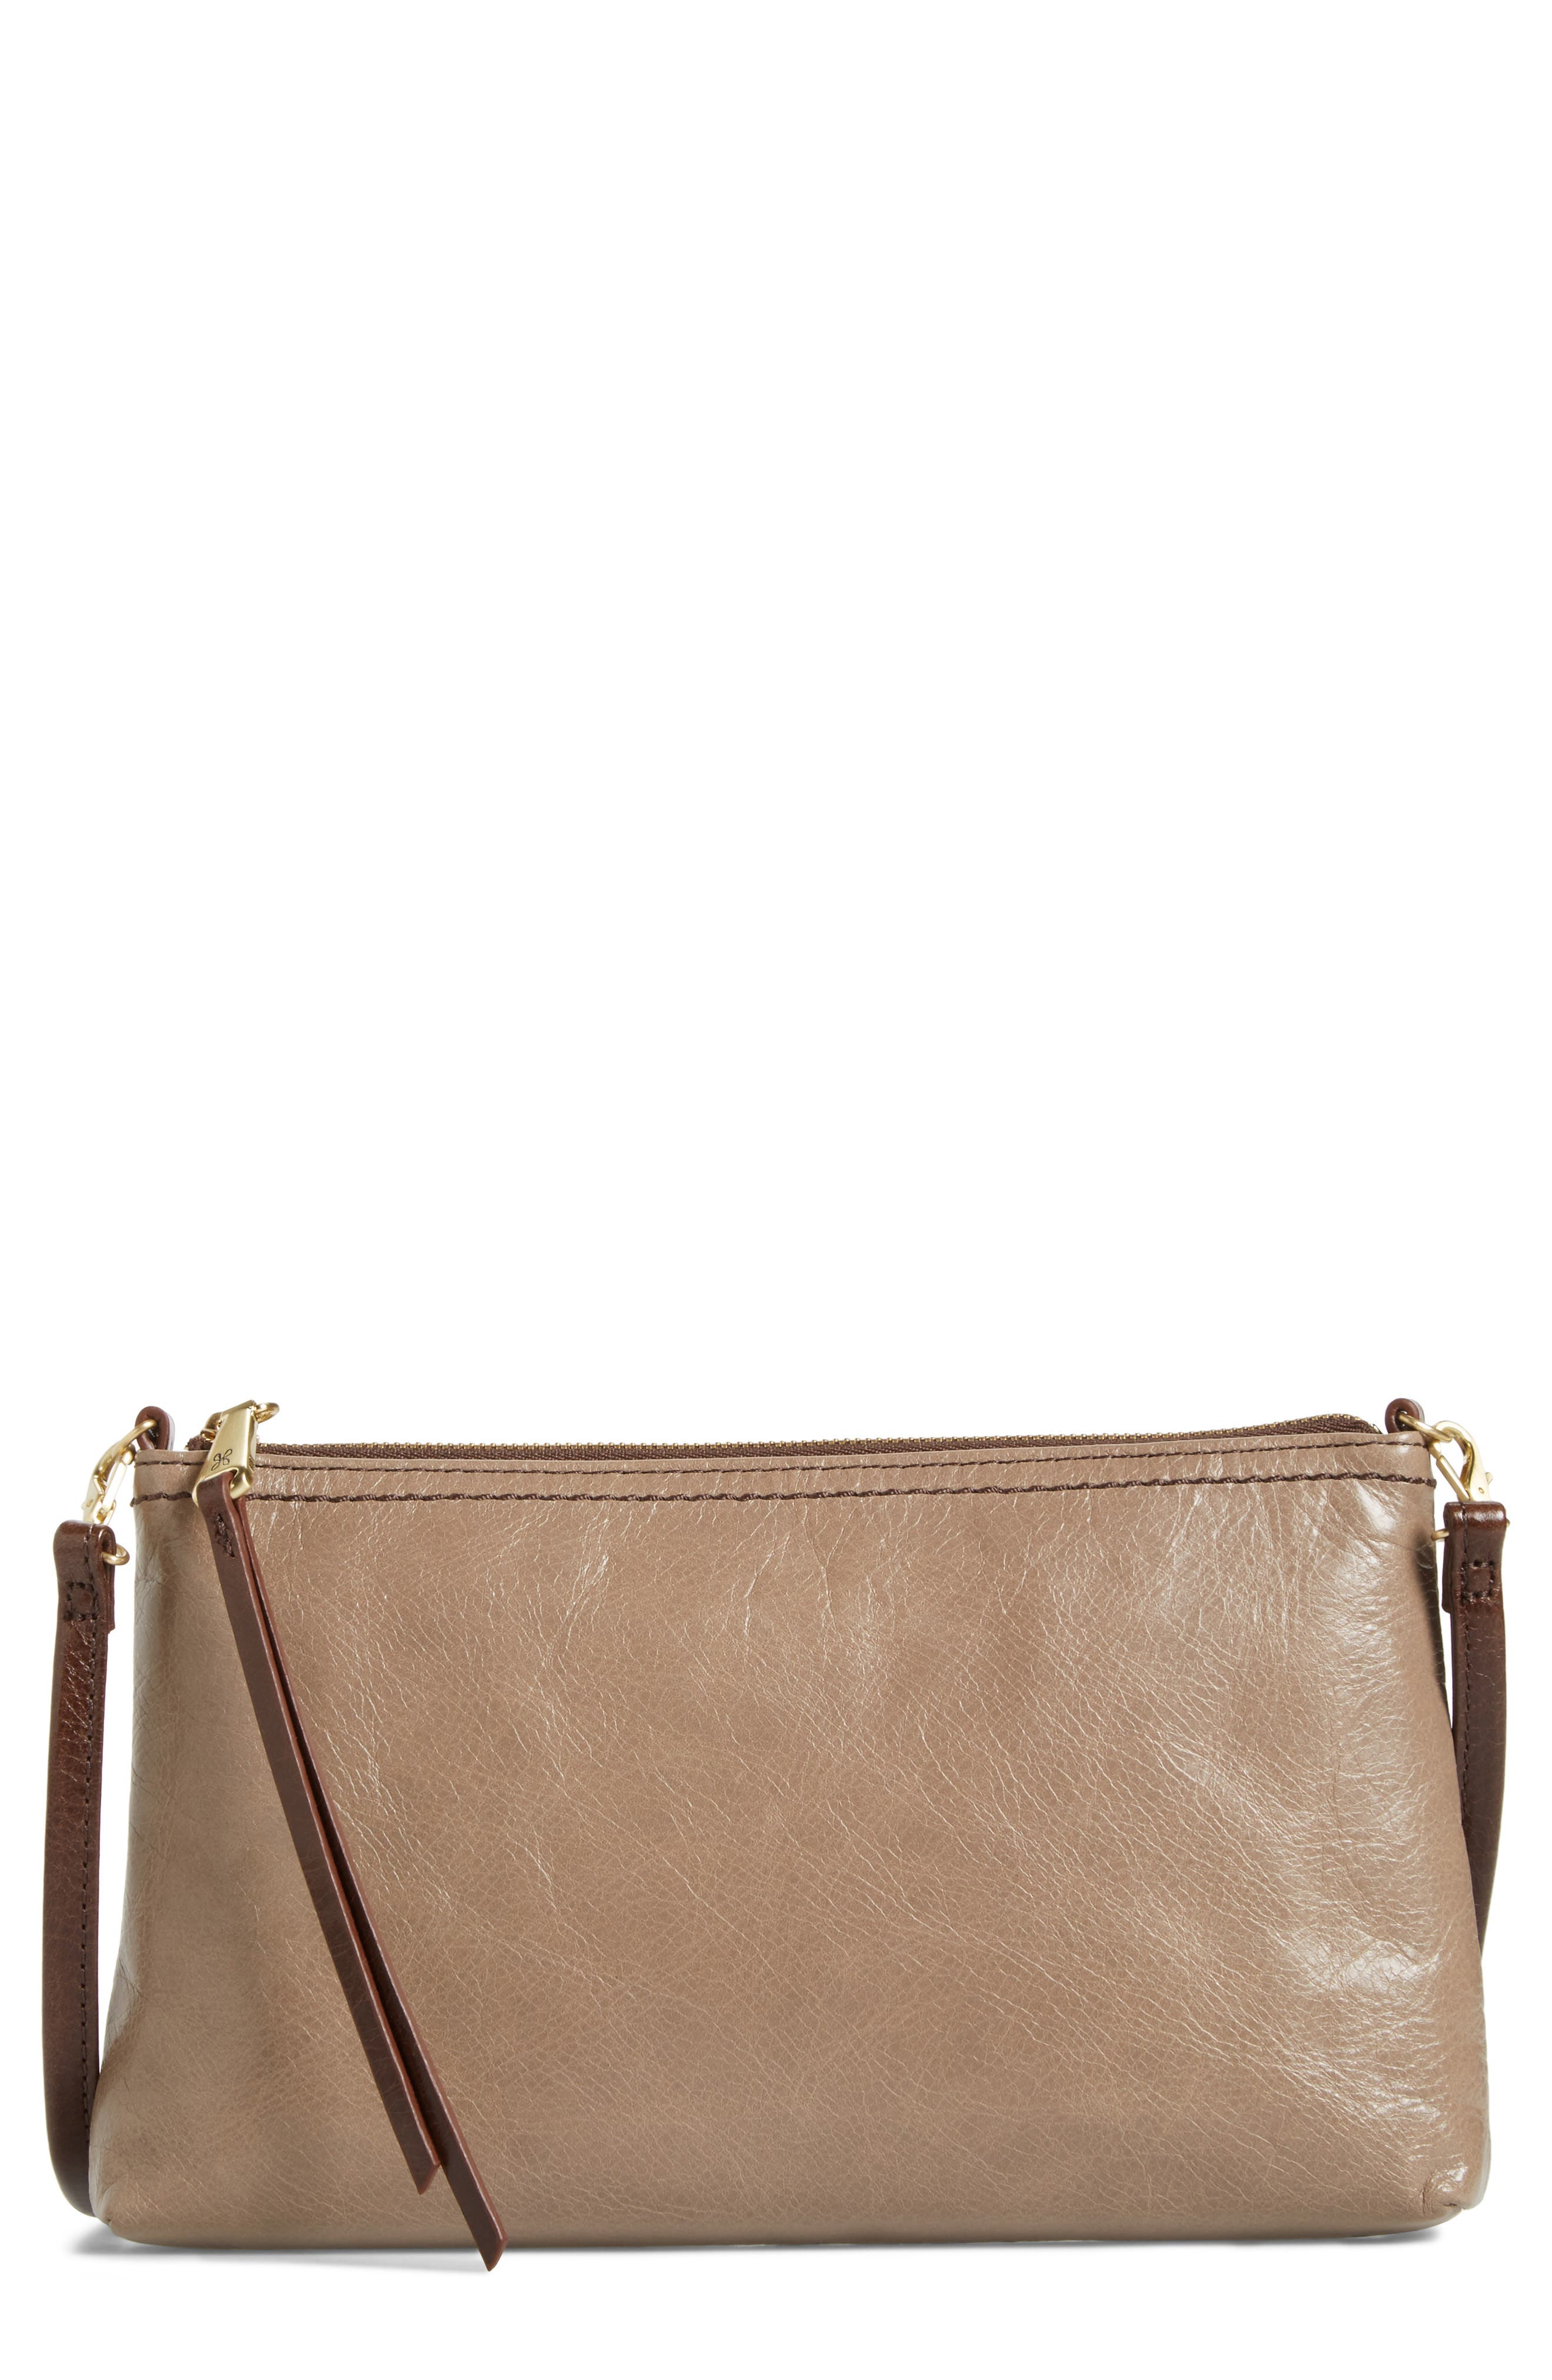 Alternate Image 1 Selected - Hobo 'Darcy' Leather Crossbody Bag